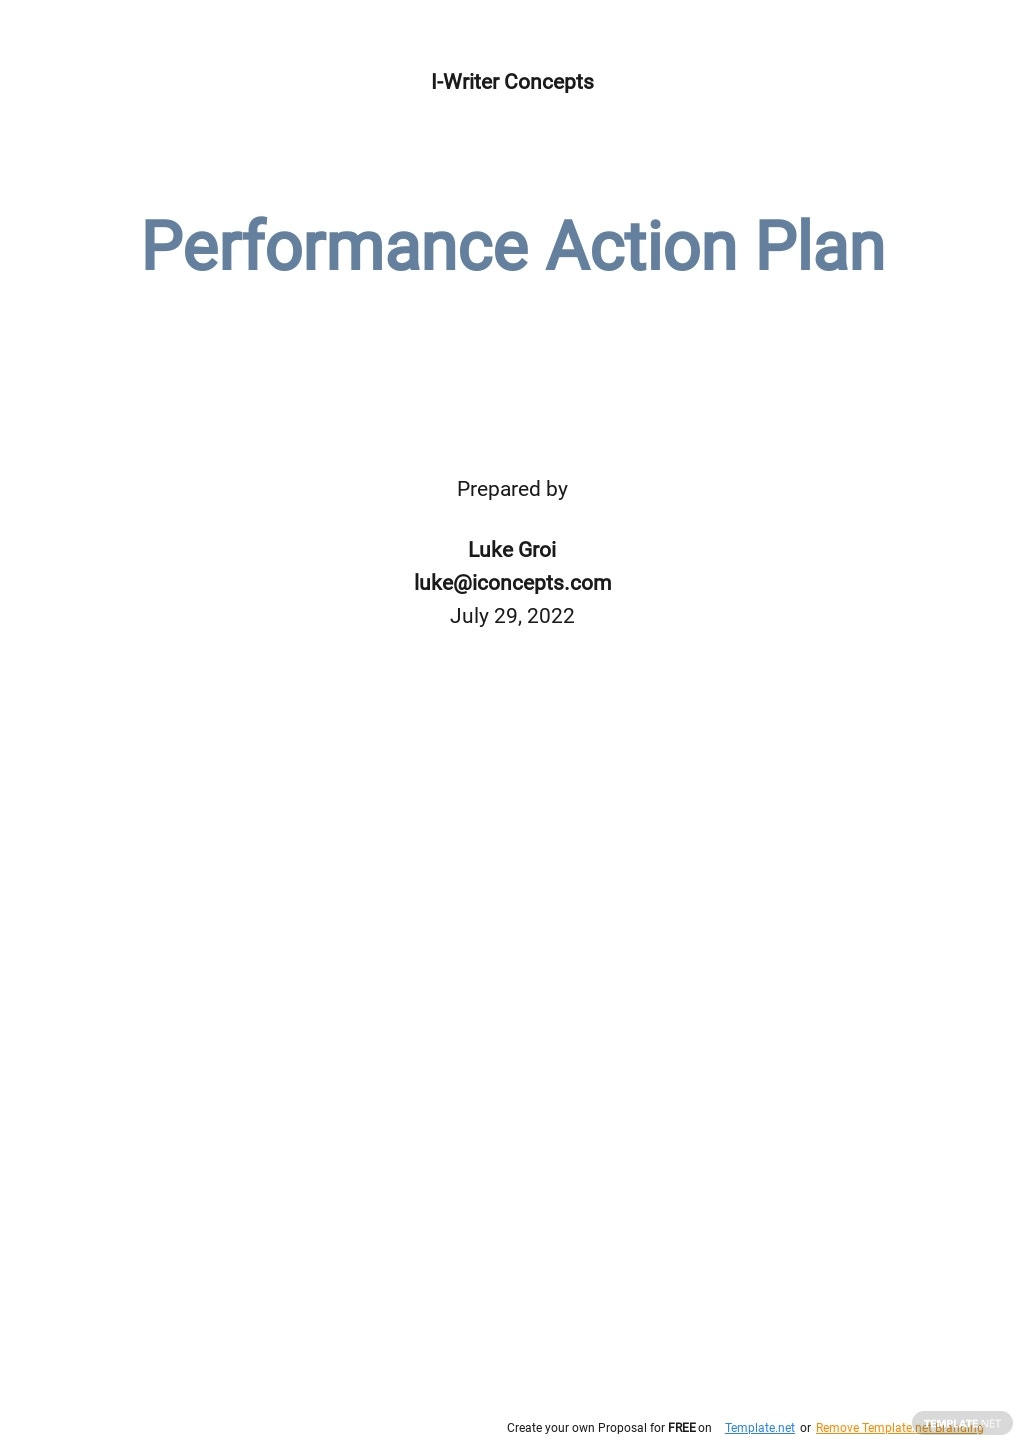 Performance Action Plan Template.jpe